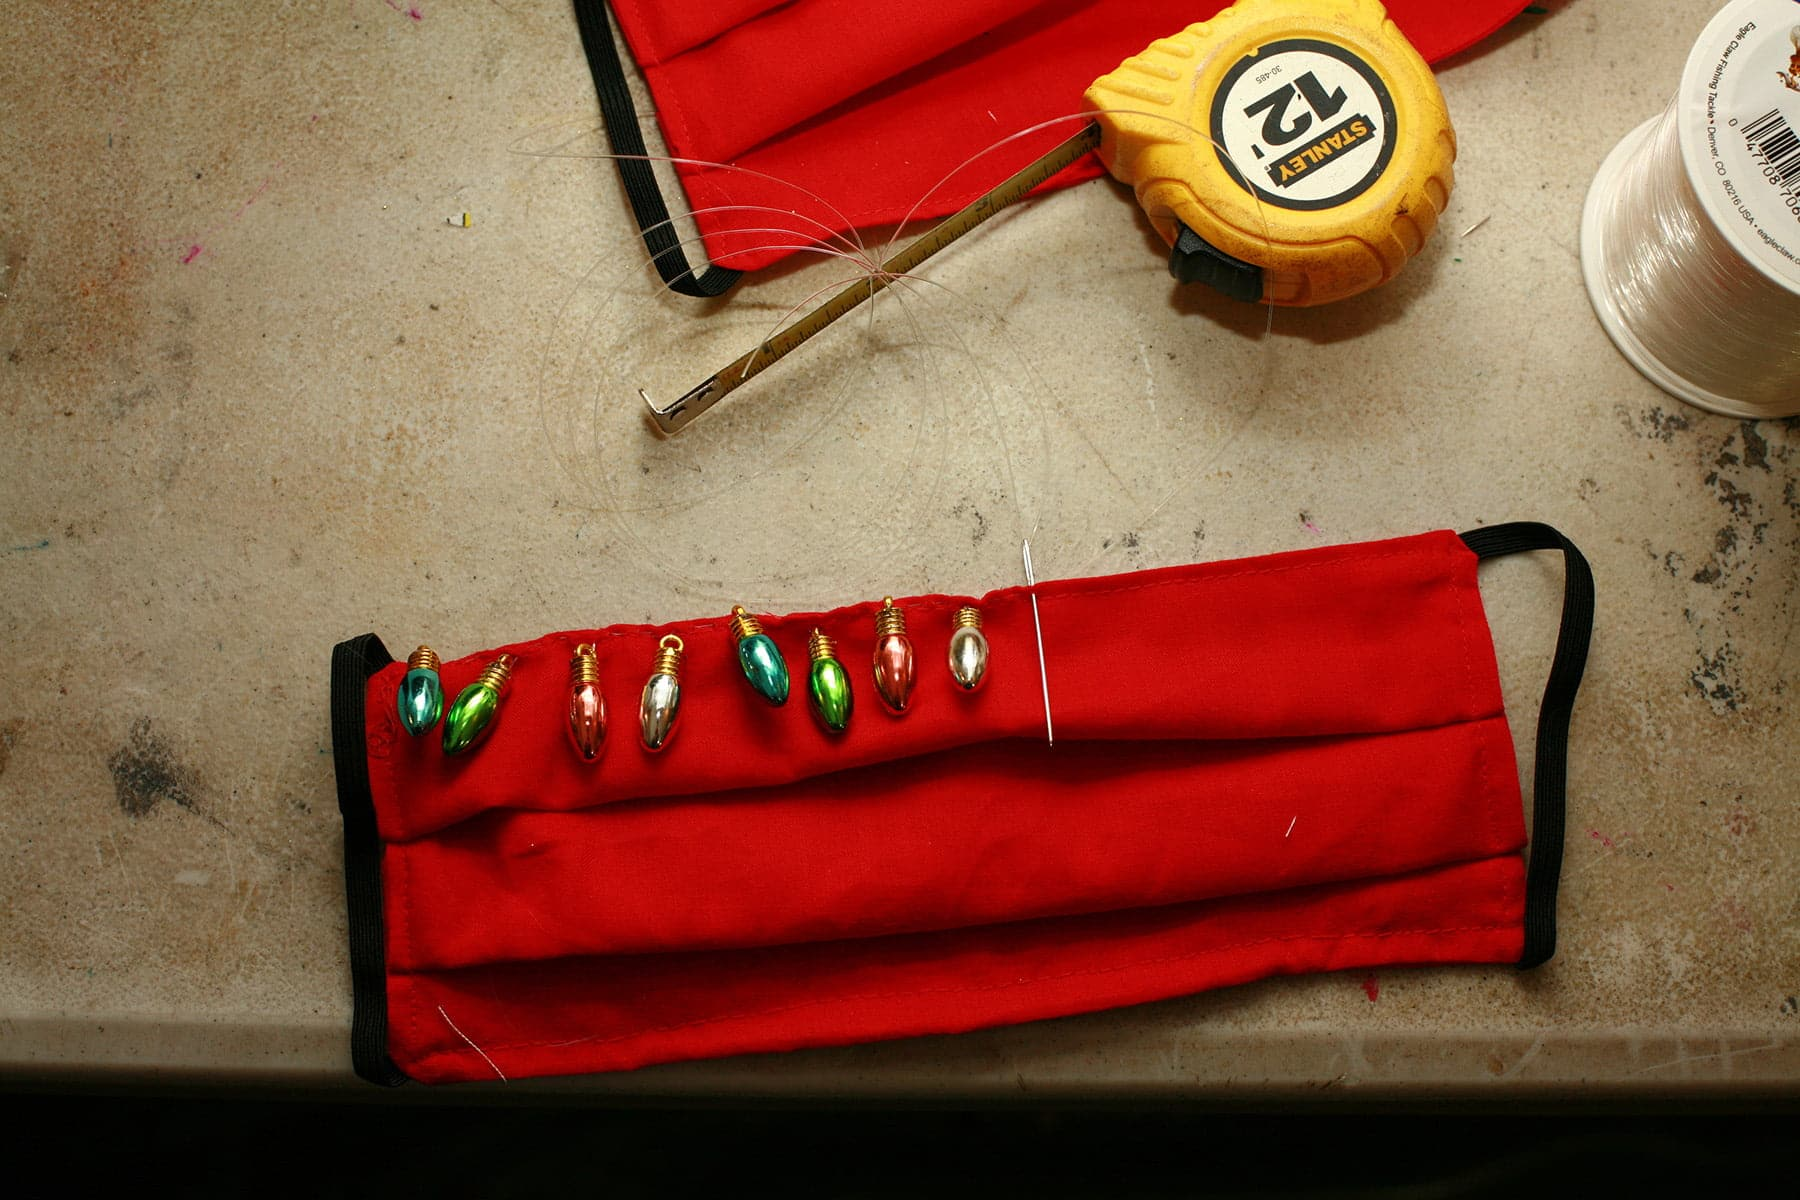 A red mask is laid out on a table, with a line of beading across the top.  There is a needle and fishing line extending off the mask, as the beading is in progress.